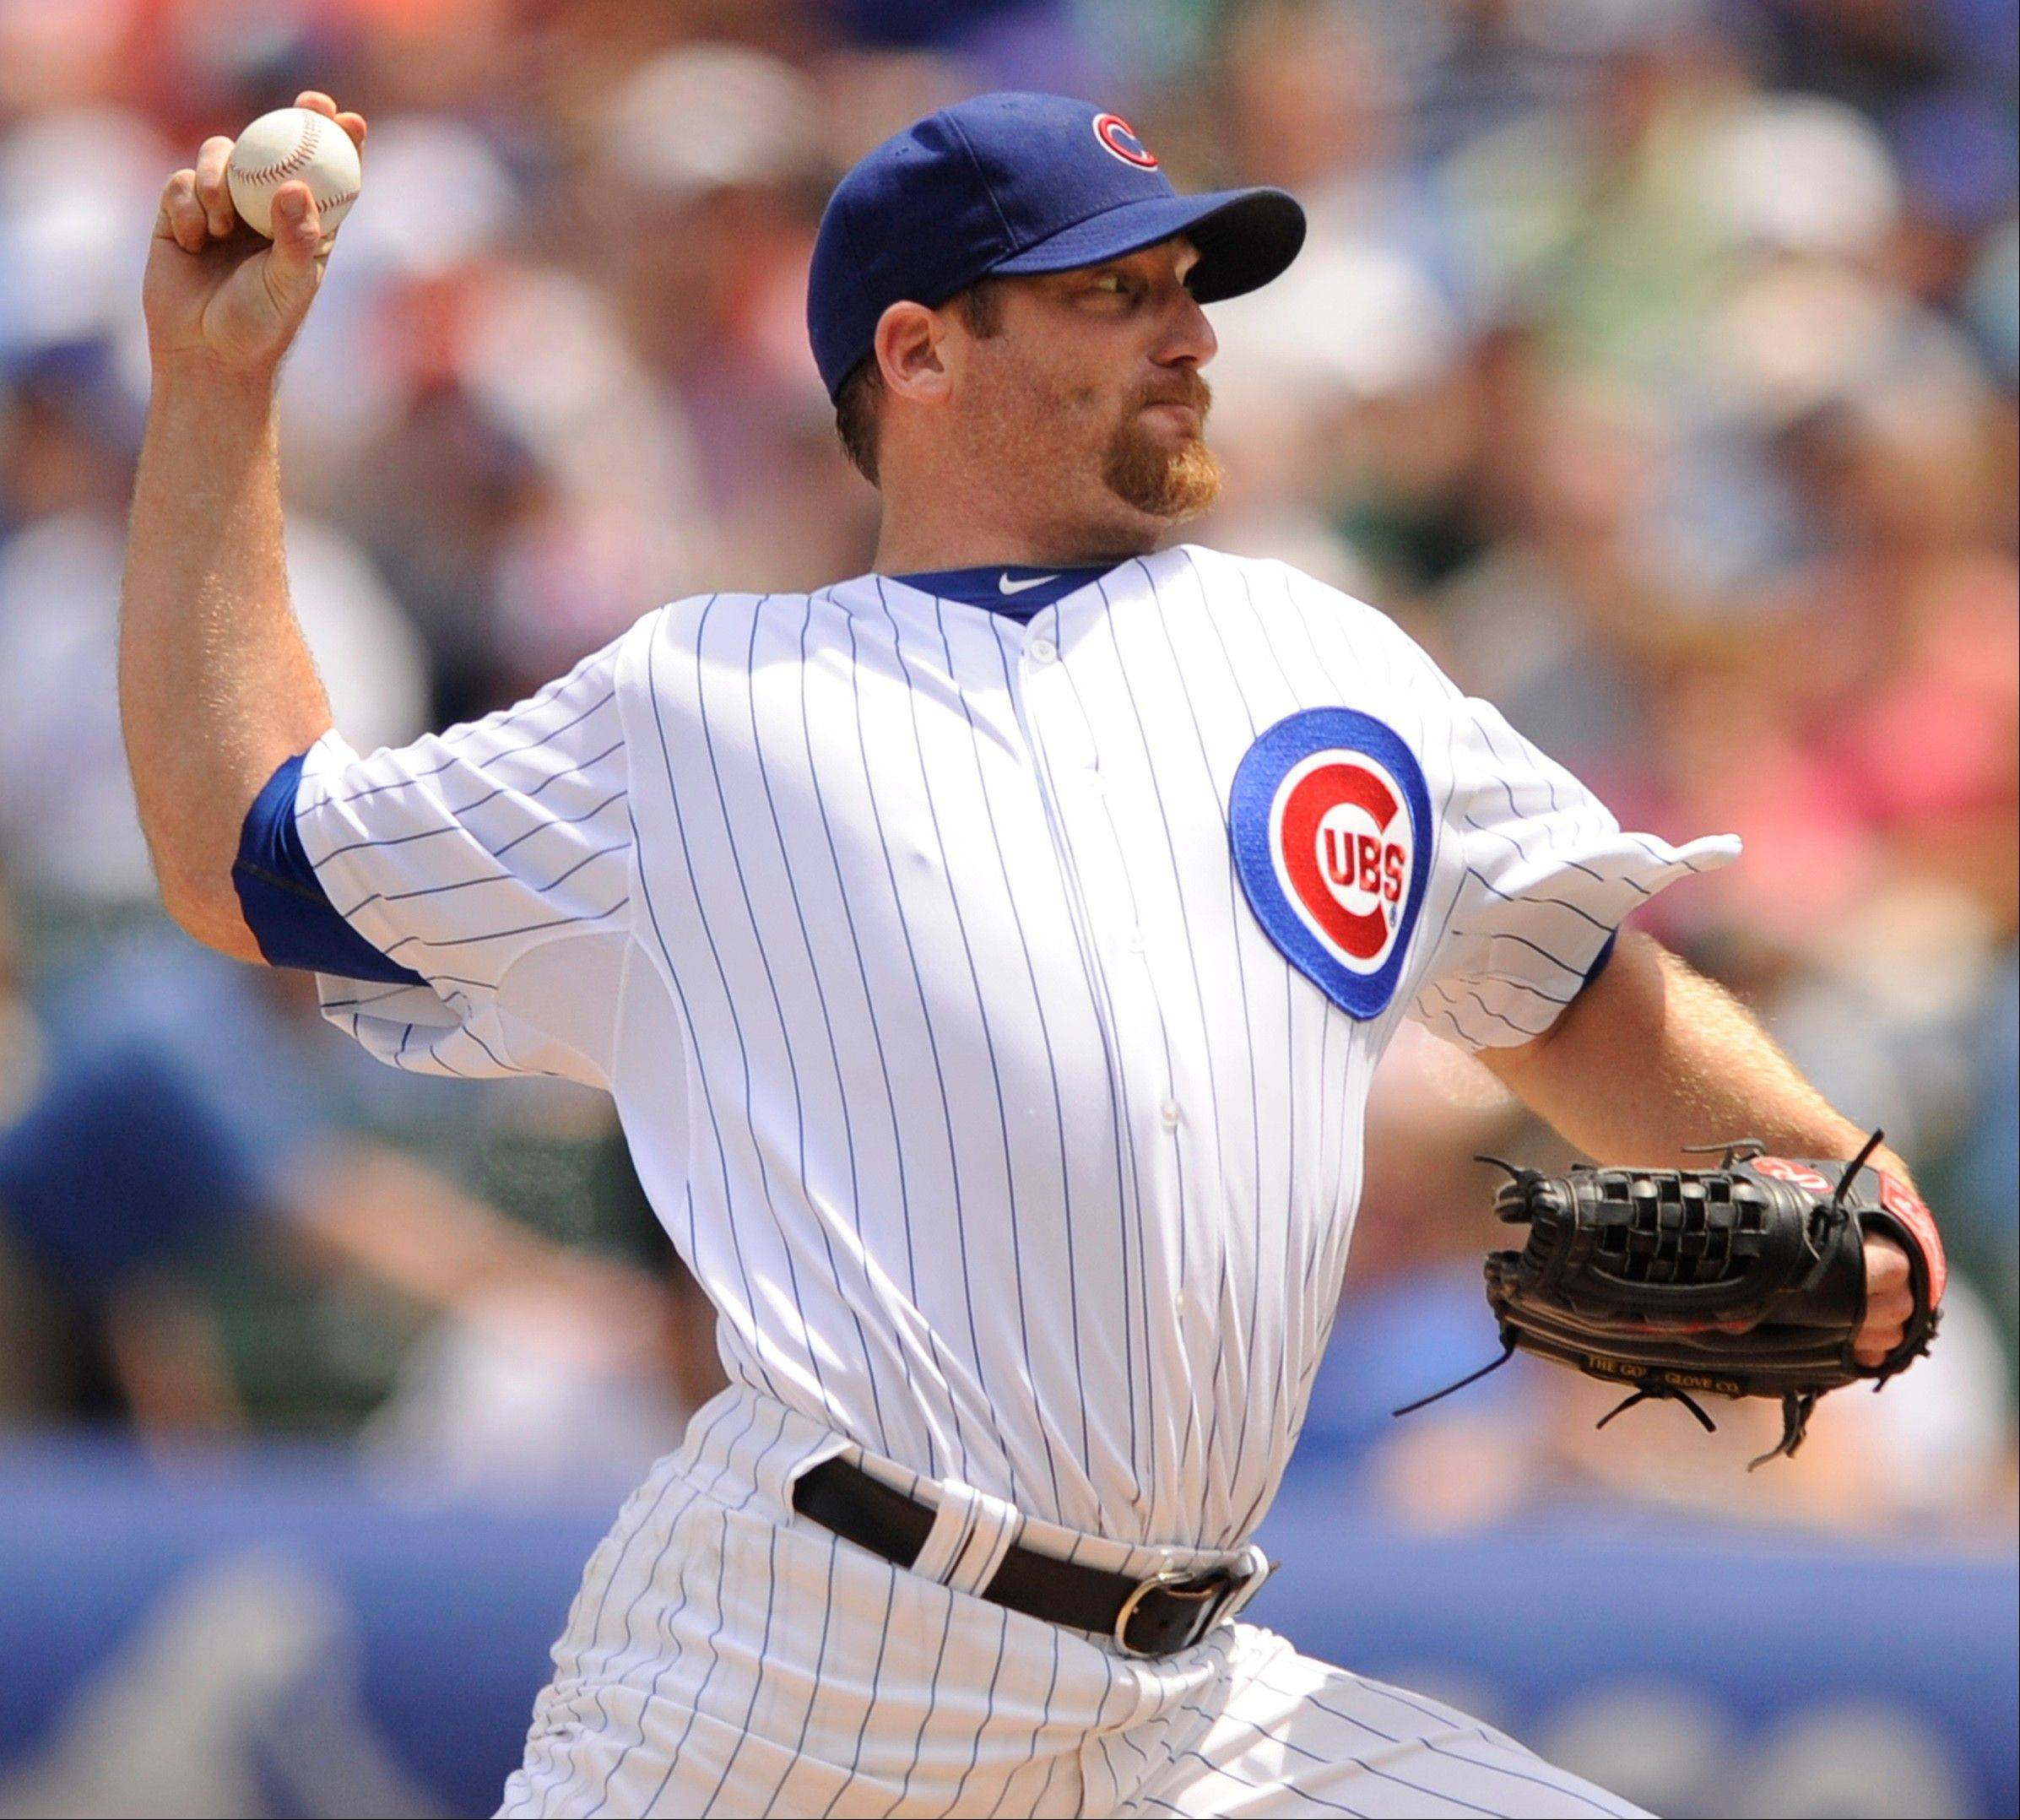 Cubs starter Ryan Dempster delivers during his 8-inning scoreless stint Friday against the Florida Marlins.